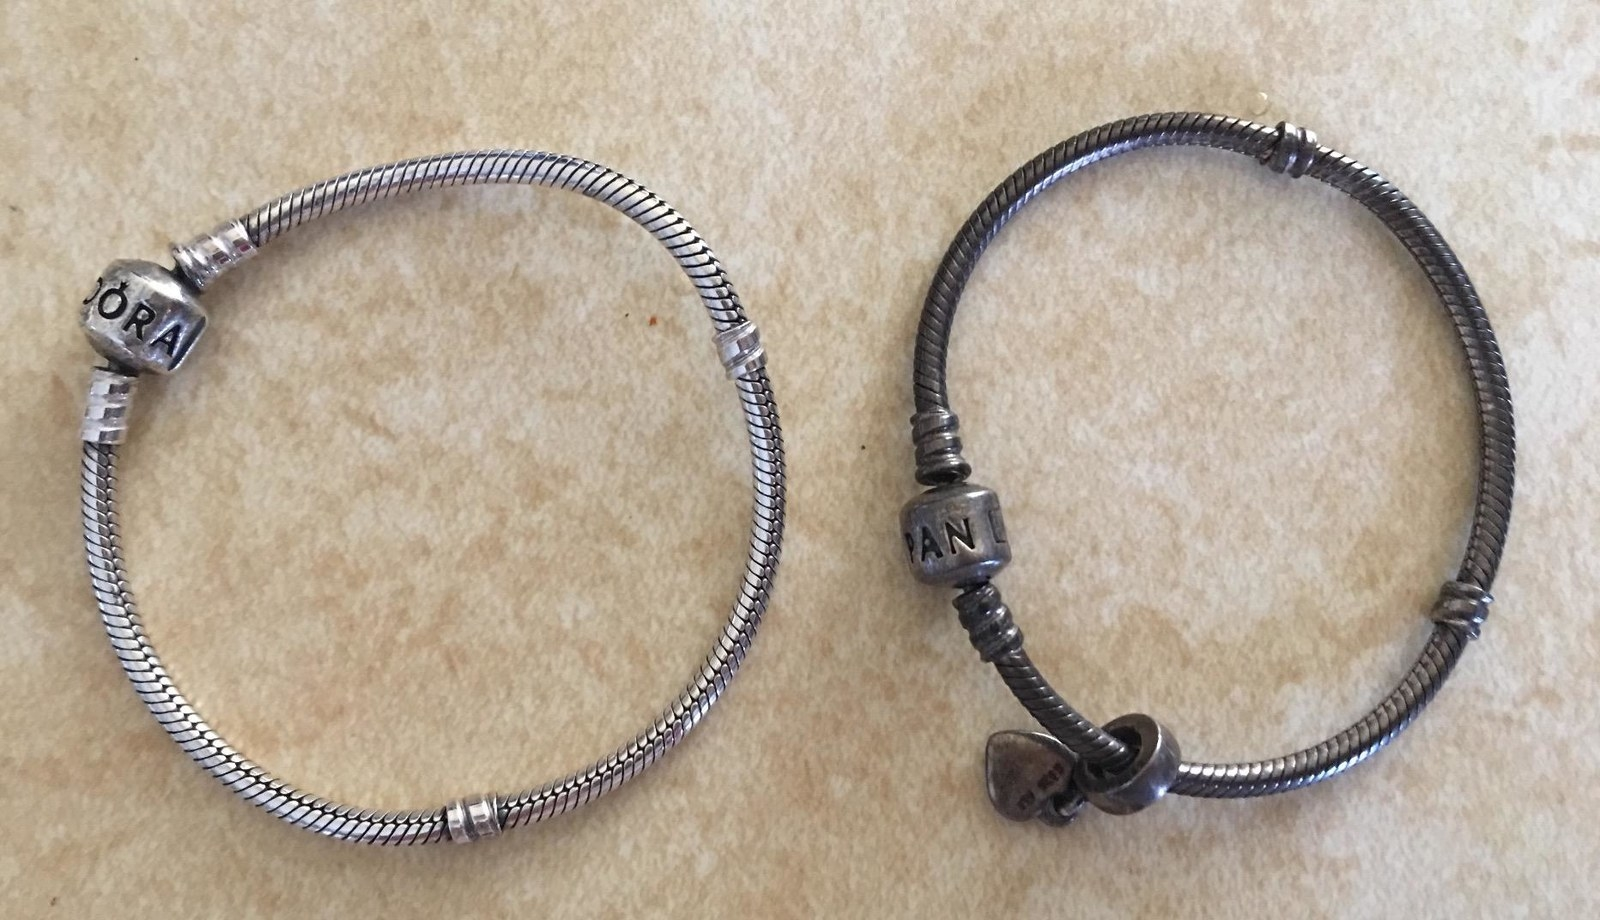 right: reviewer's bracelet looking tarnished and dark grey left: reviewer's bracelet looking shiny and silver